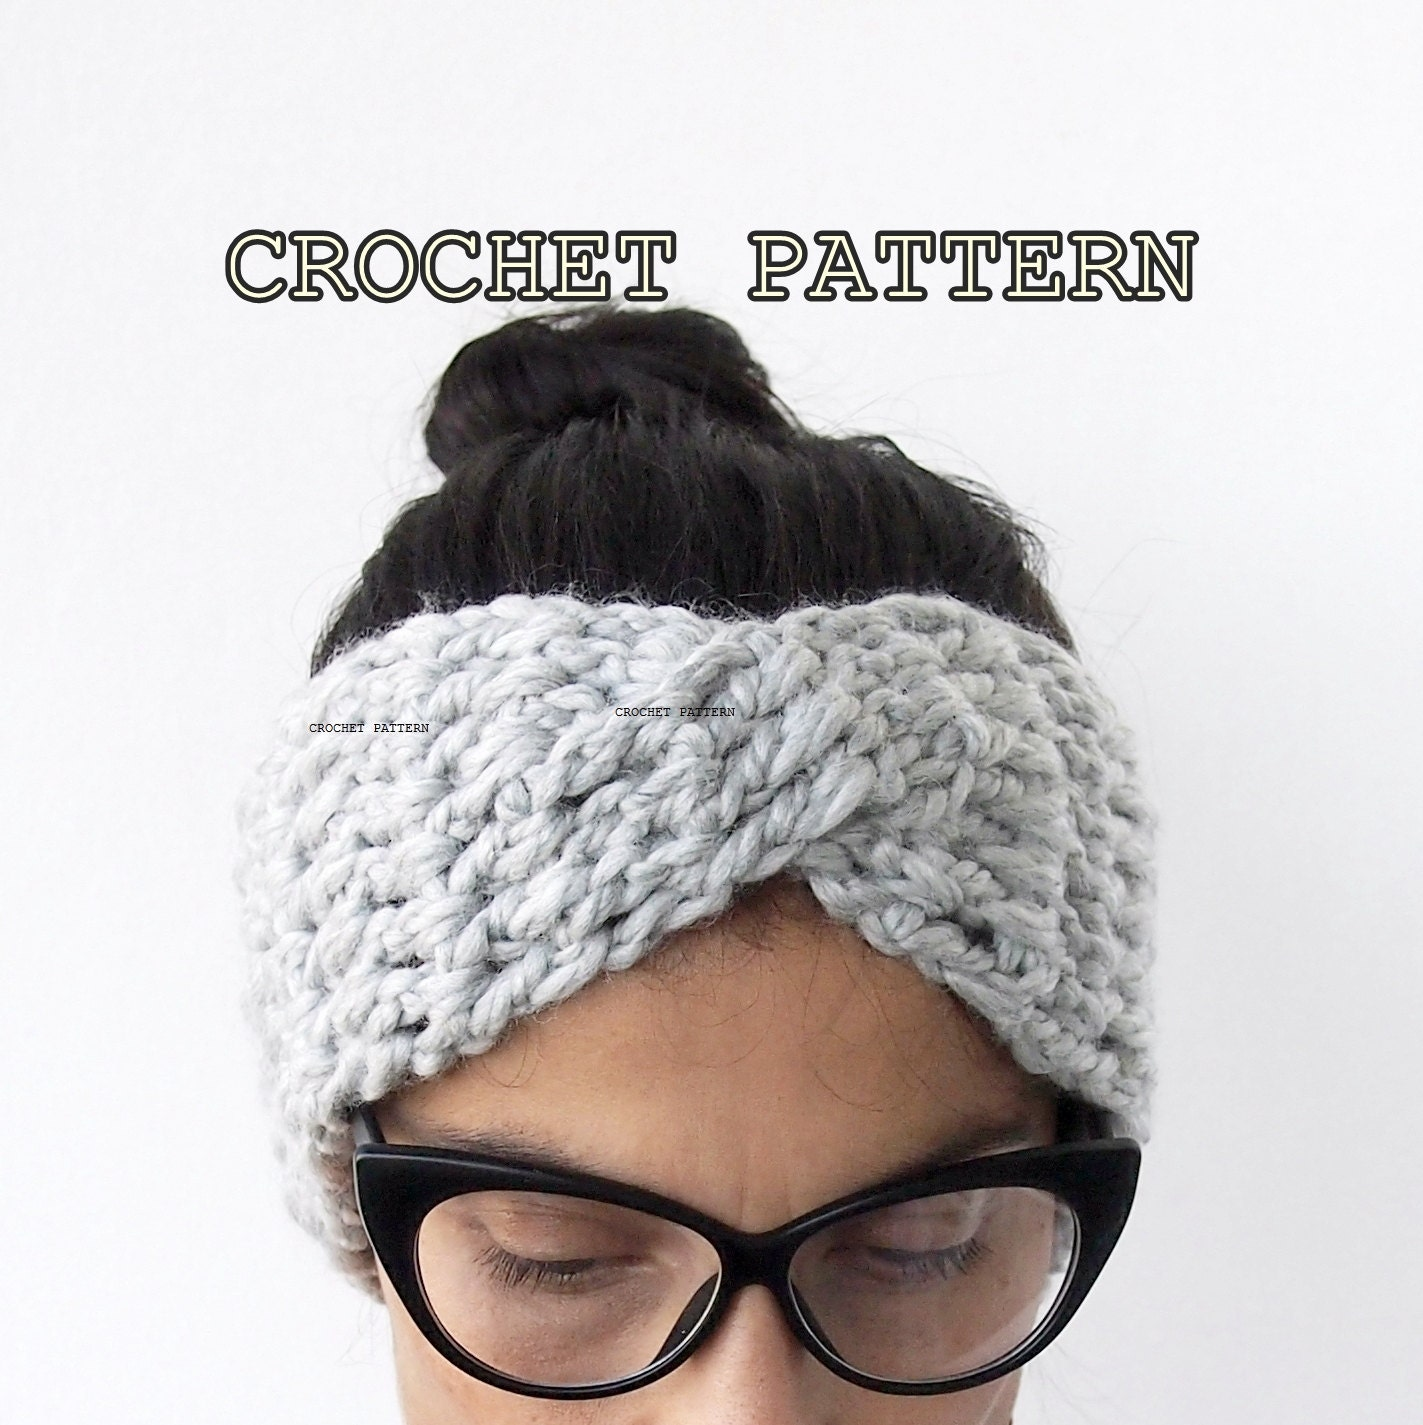 Crochet Pattern turban headband chunky hat twist headwrap